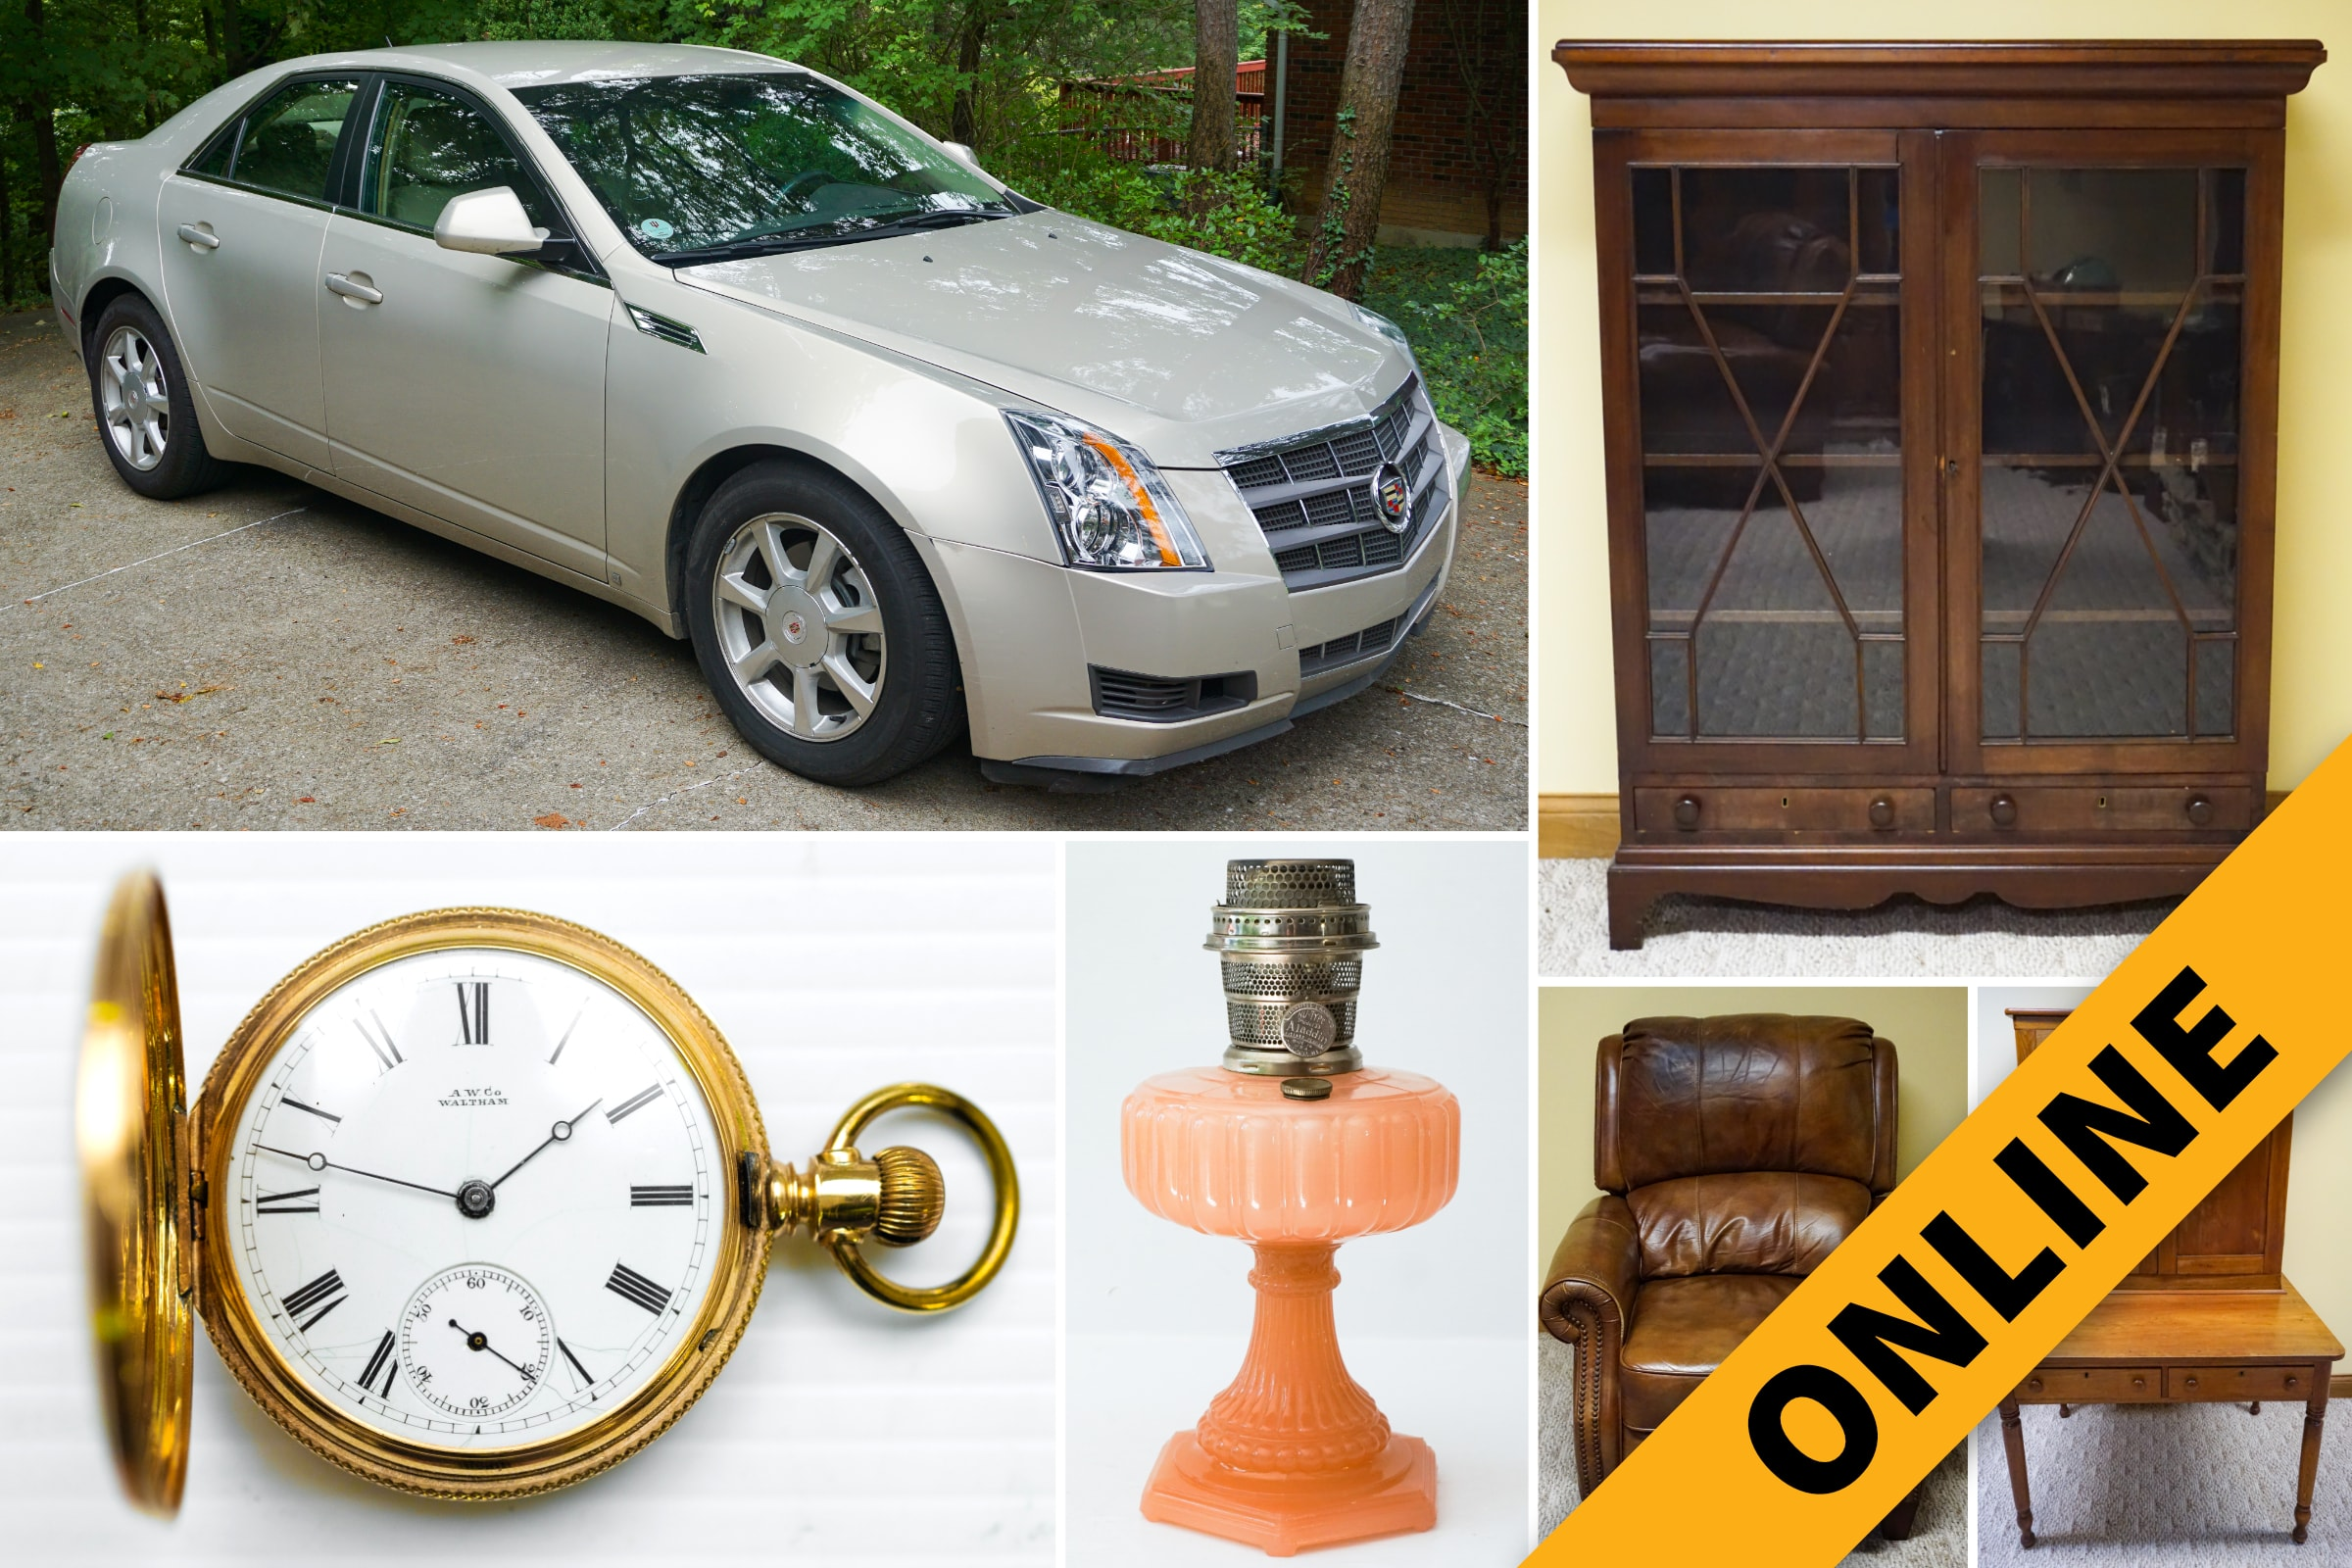 Lohmeyer Vehicle, Antique & Collectible Online Auction